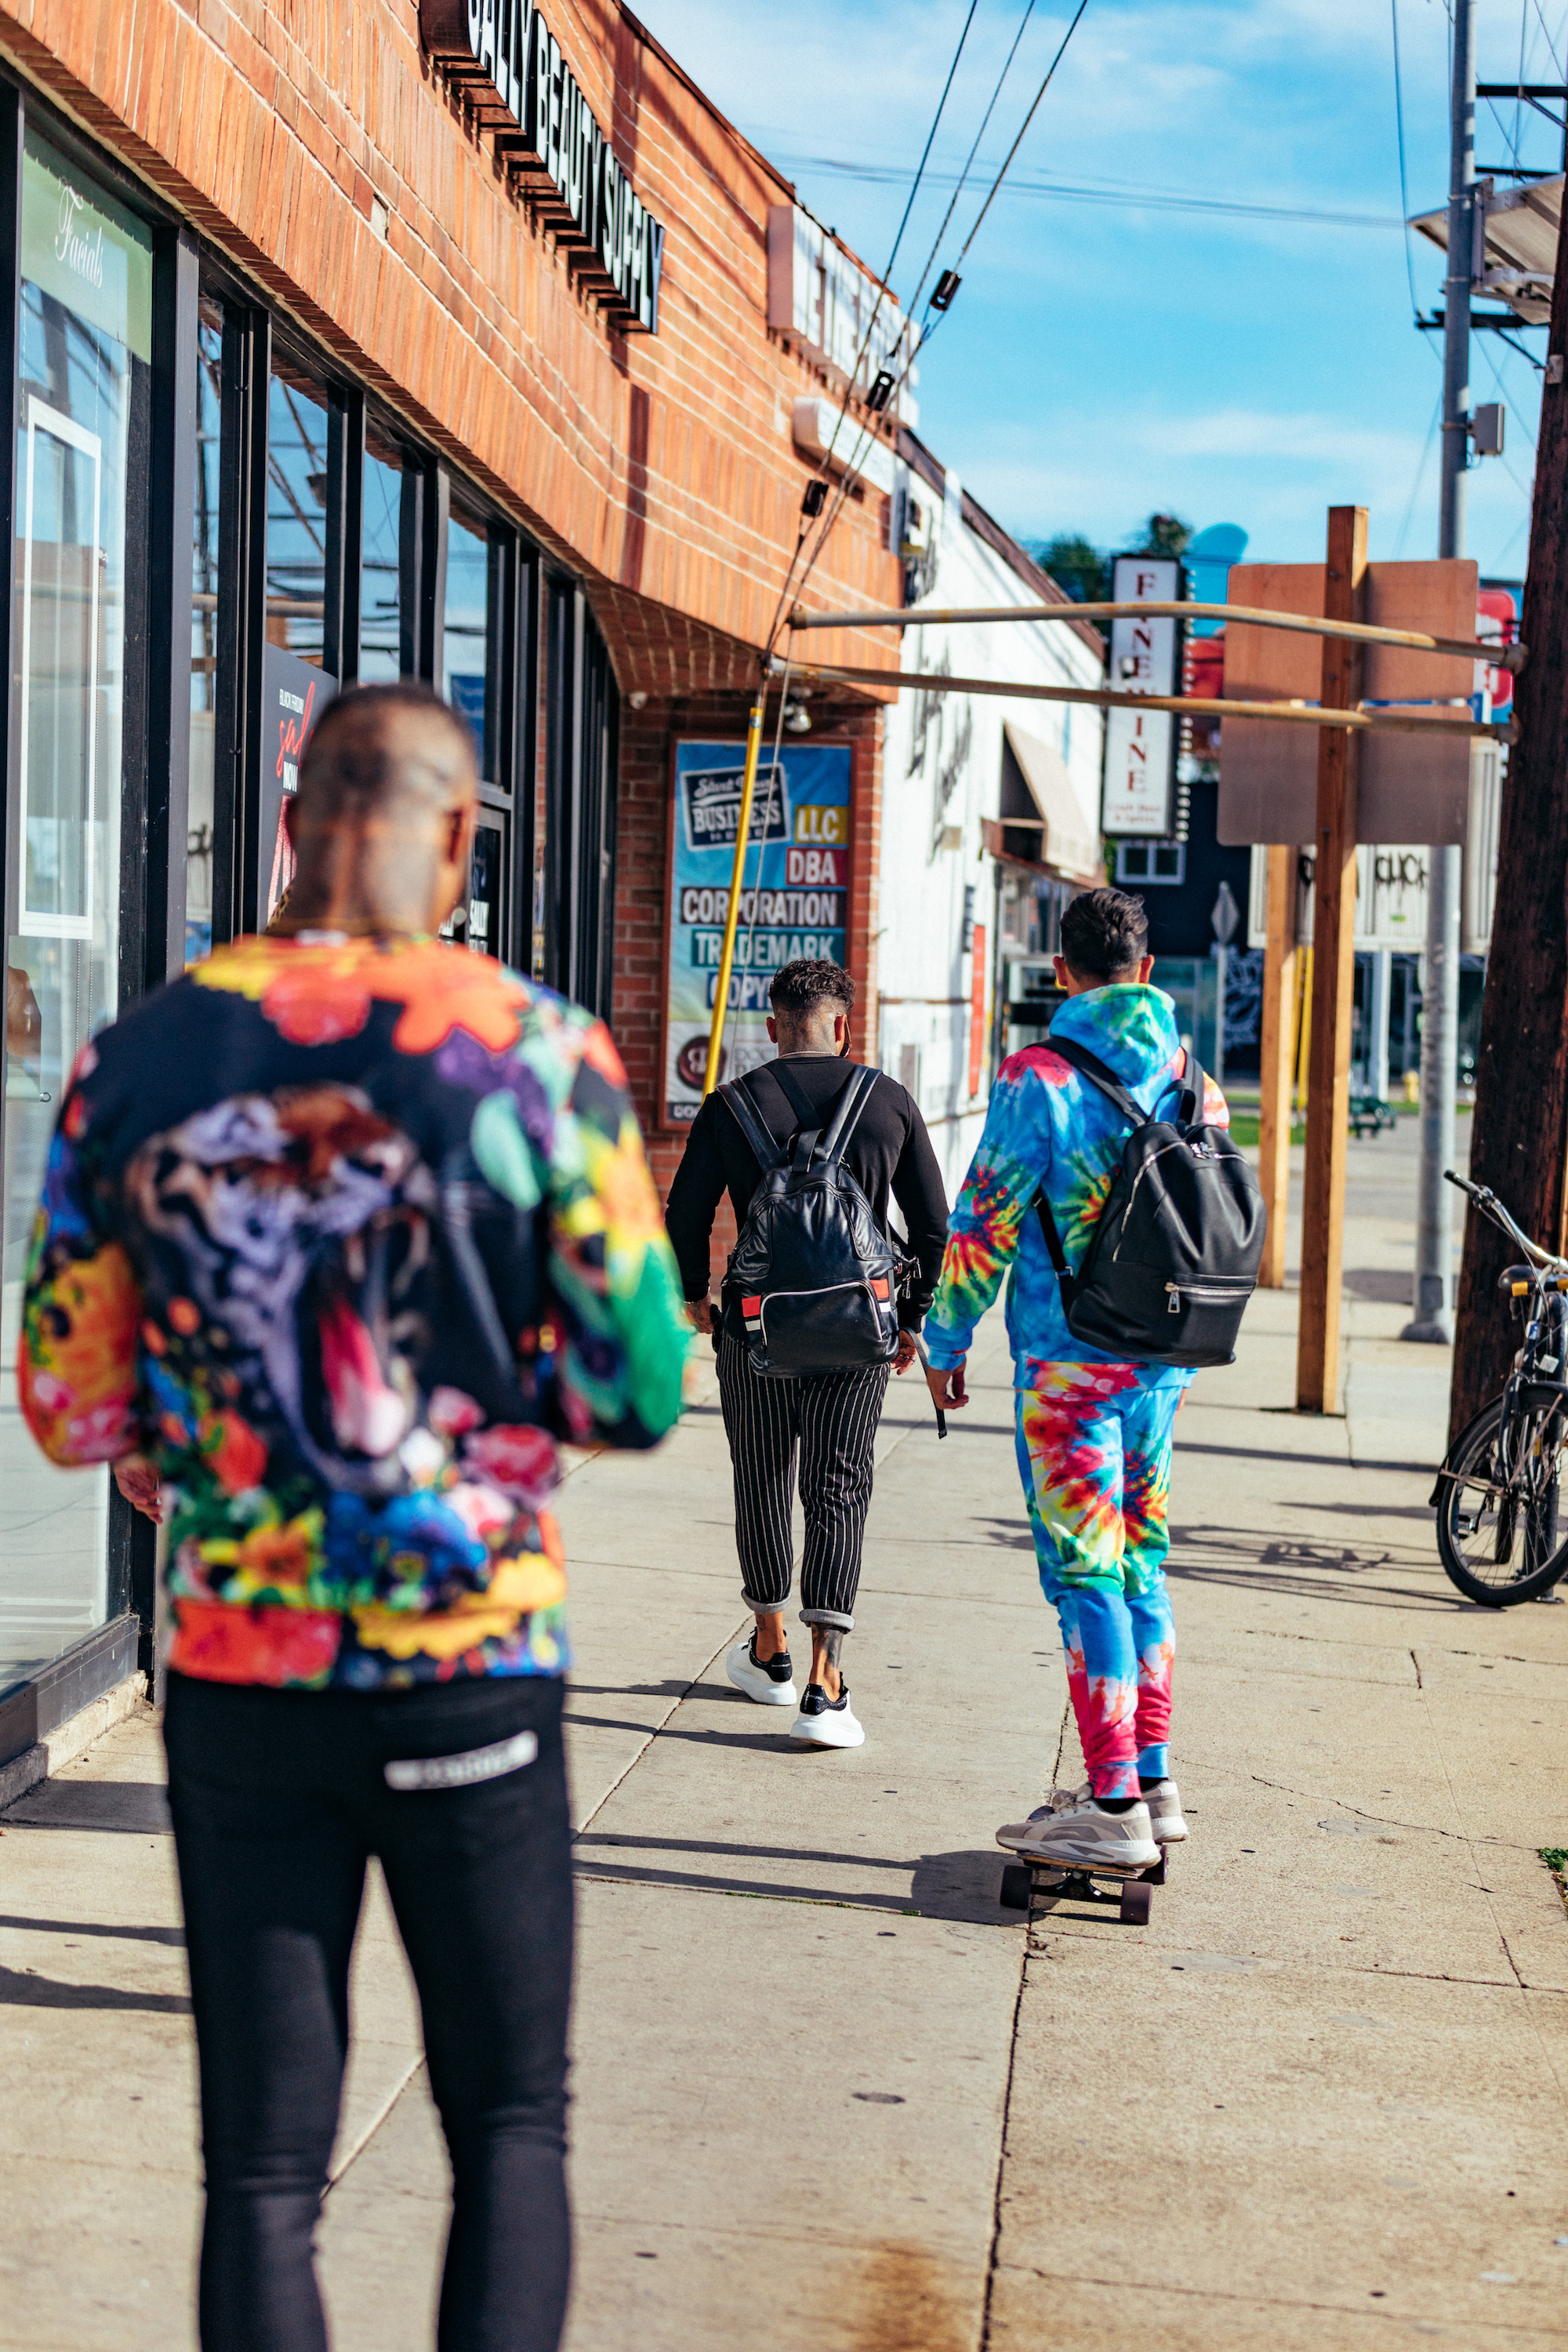 Hype streetwear brand SS19 collection tropical print and tie dye